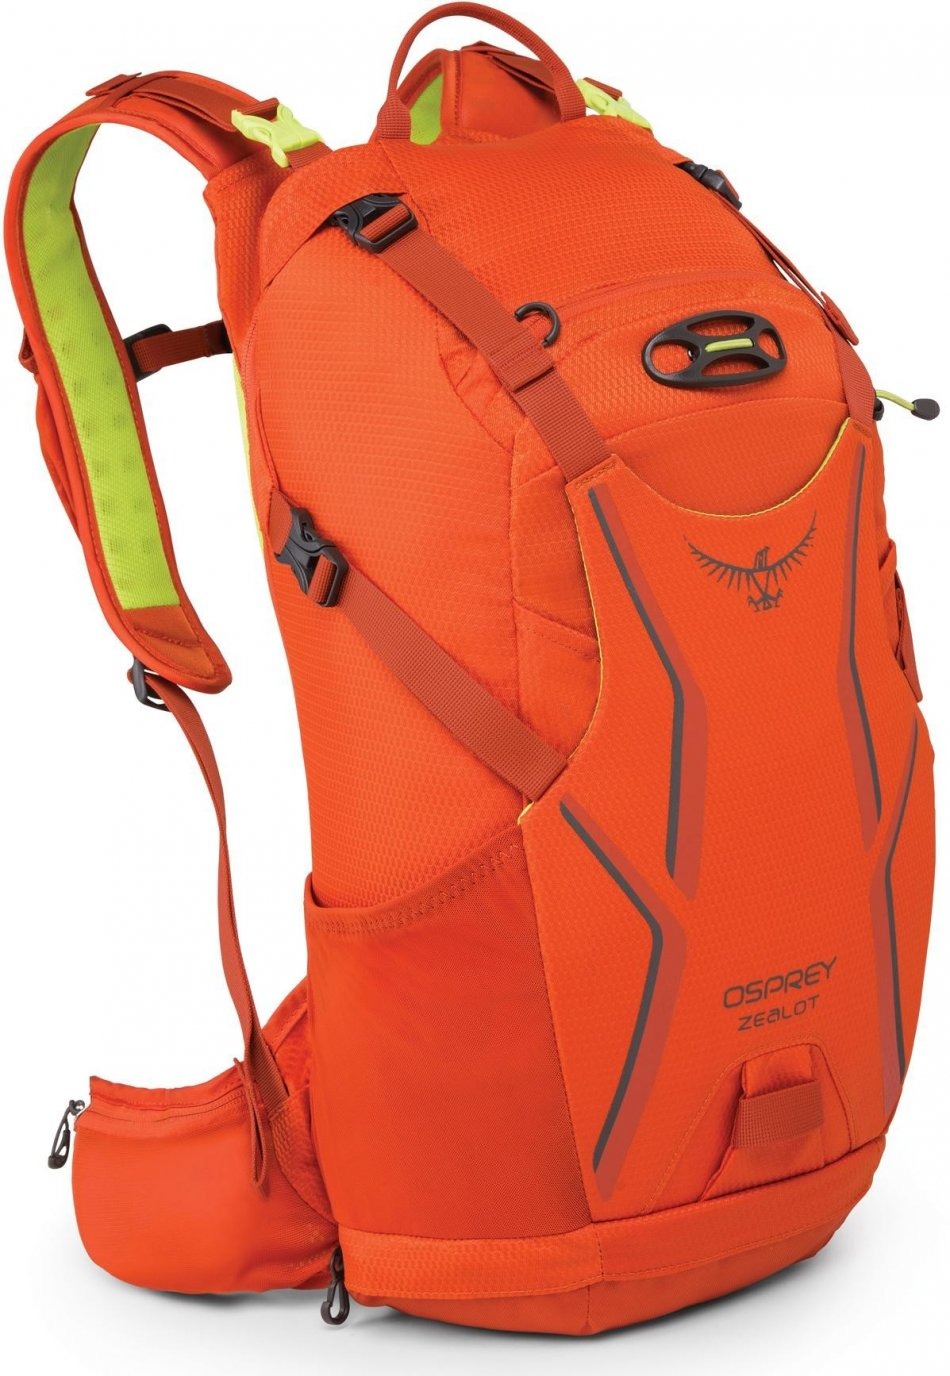 Osprey Zealot 15 Atomic Orange